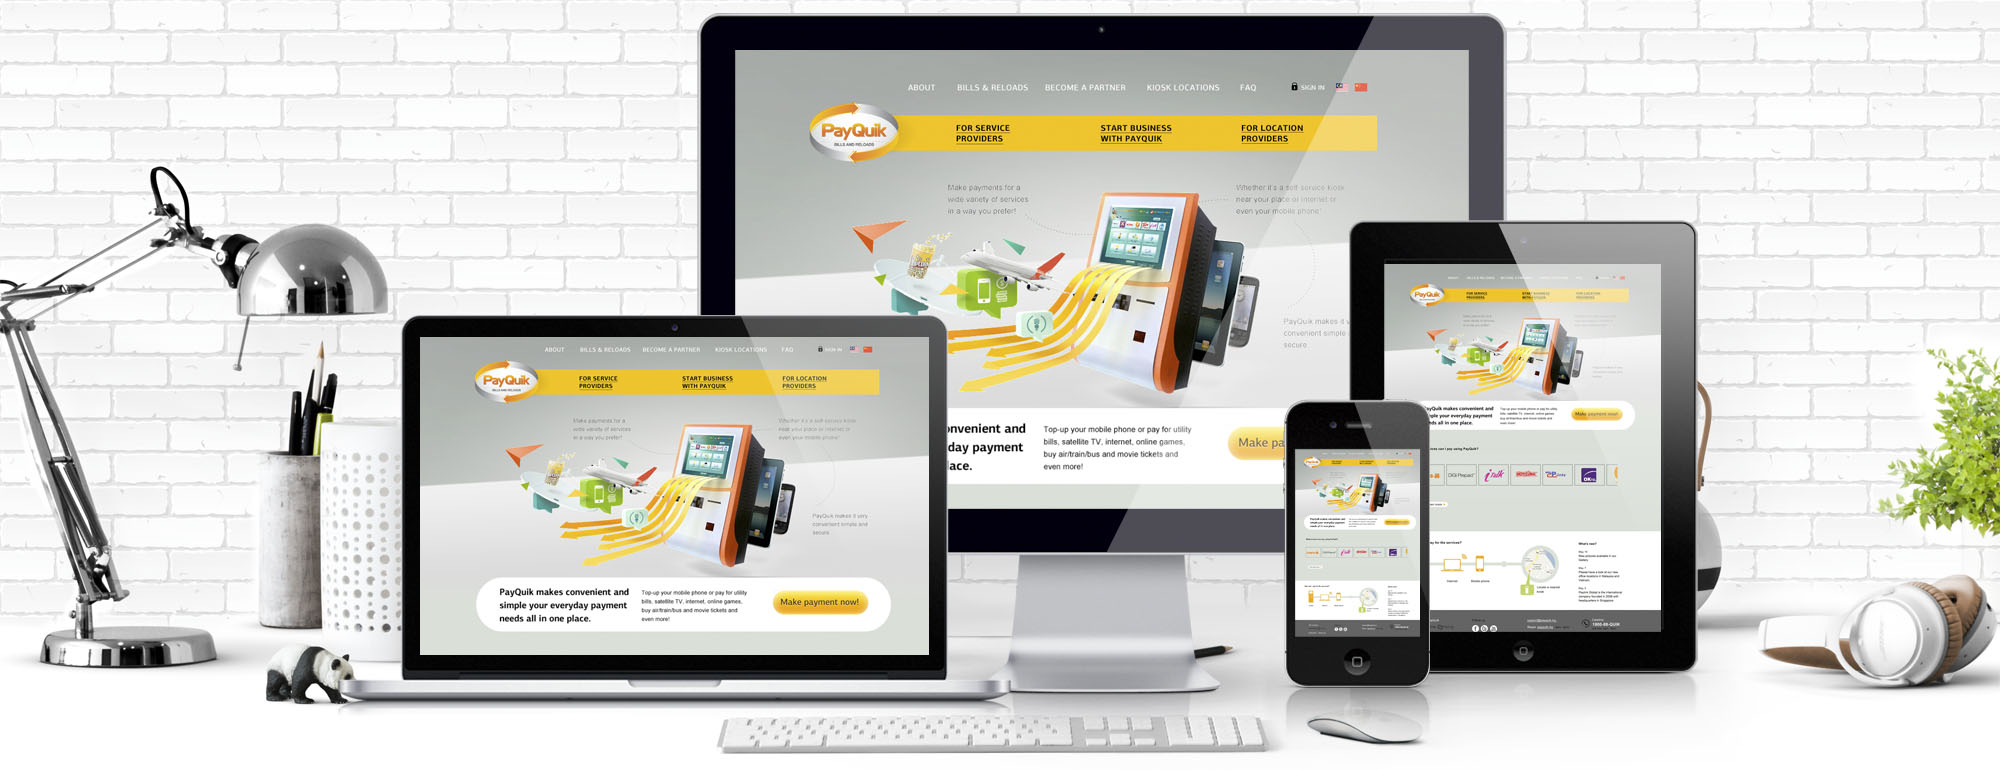 payquick-responsive